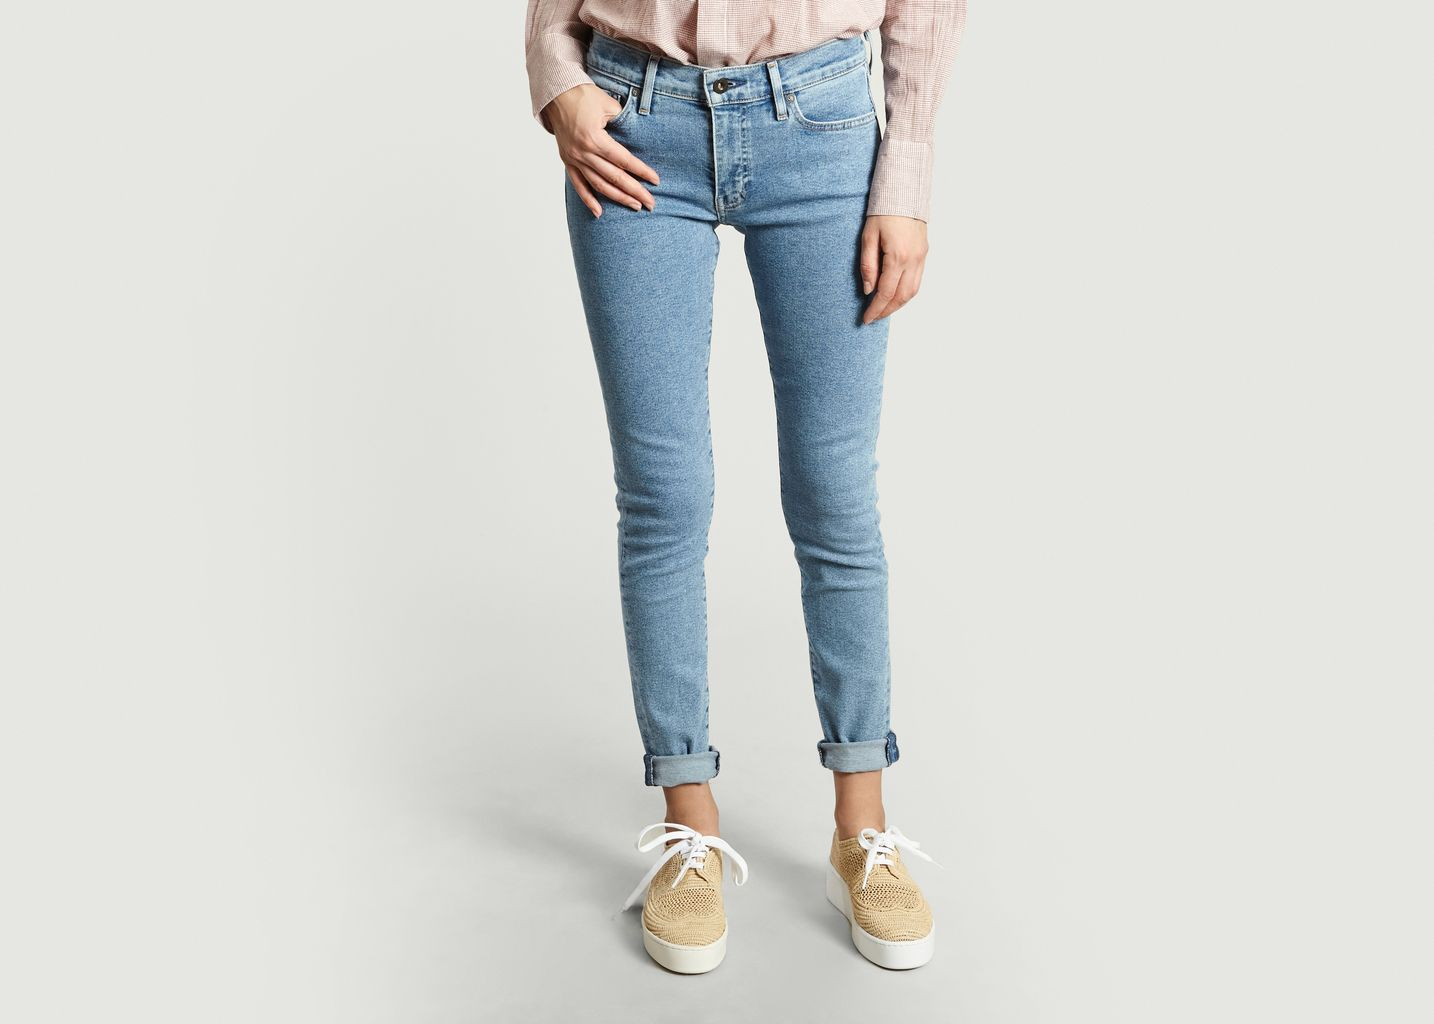 Jean Empire Skinny - Levi's Made and Crafted